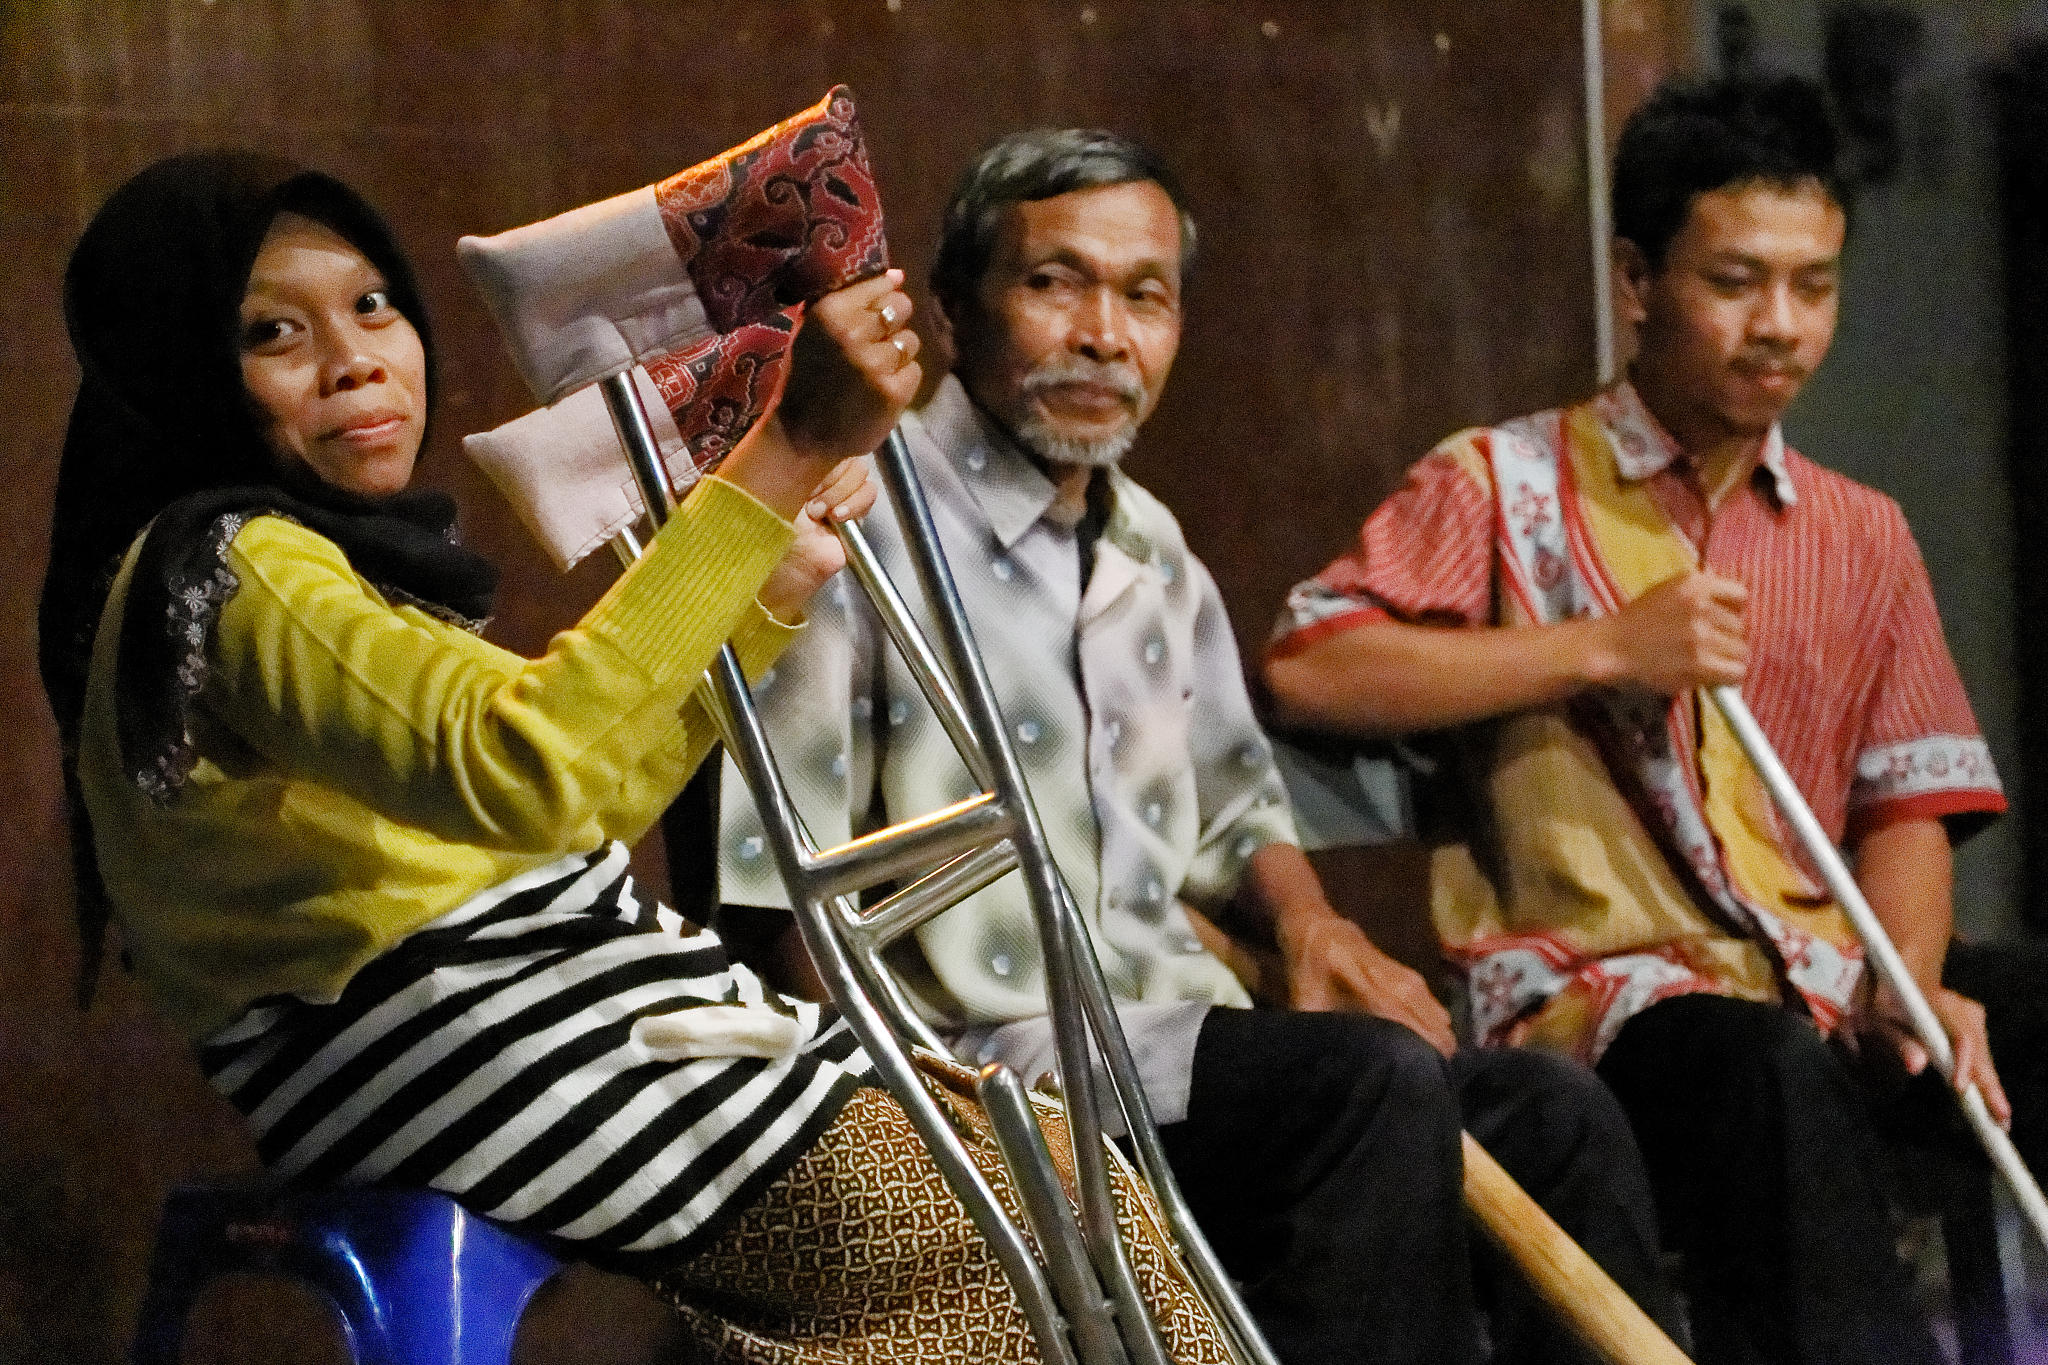 Community Theater for People with Disabilities